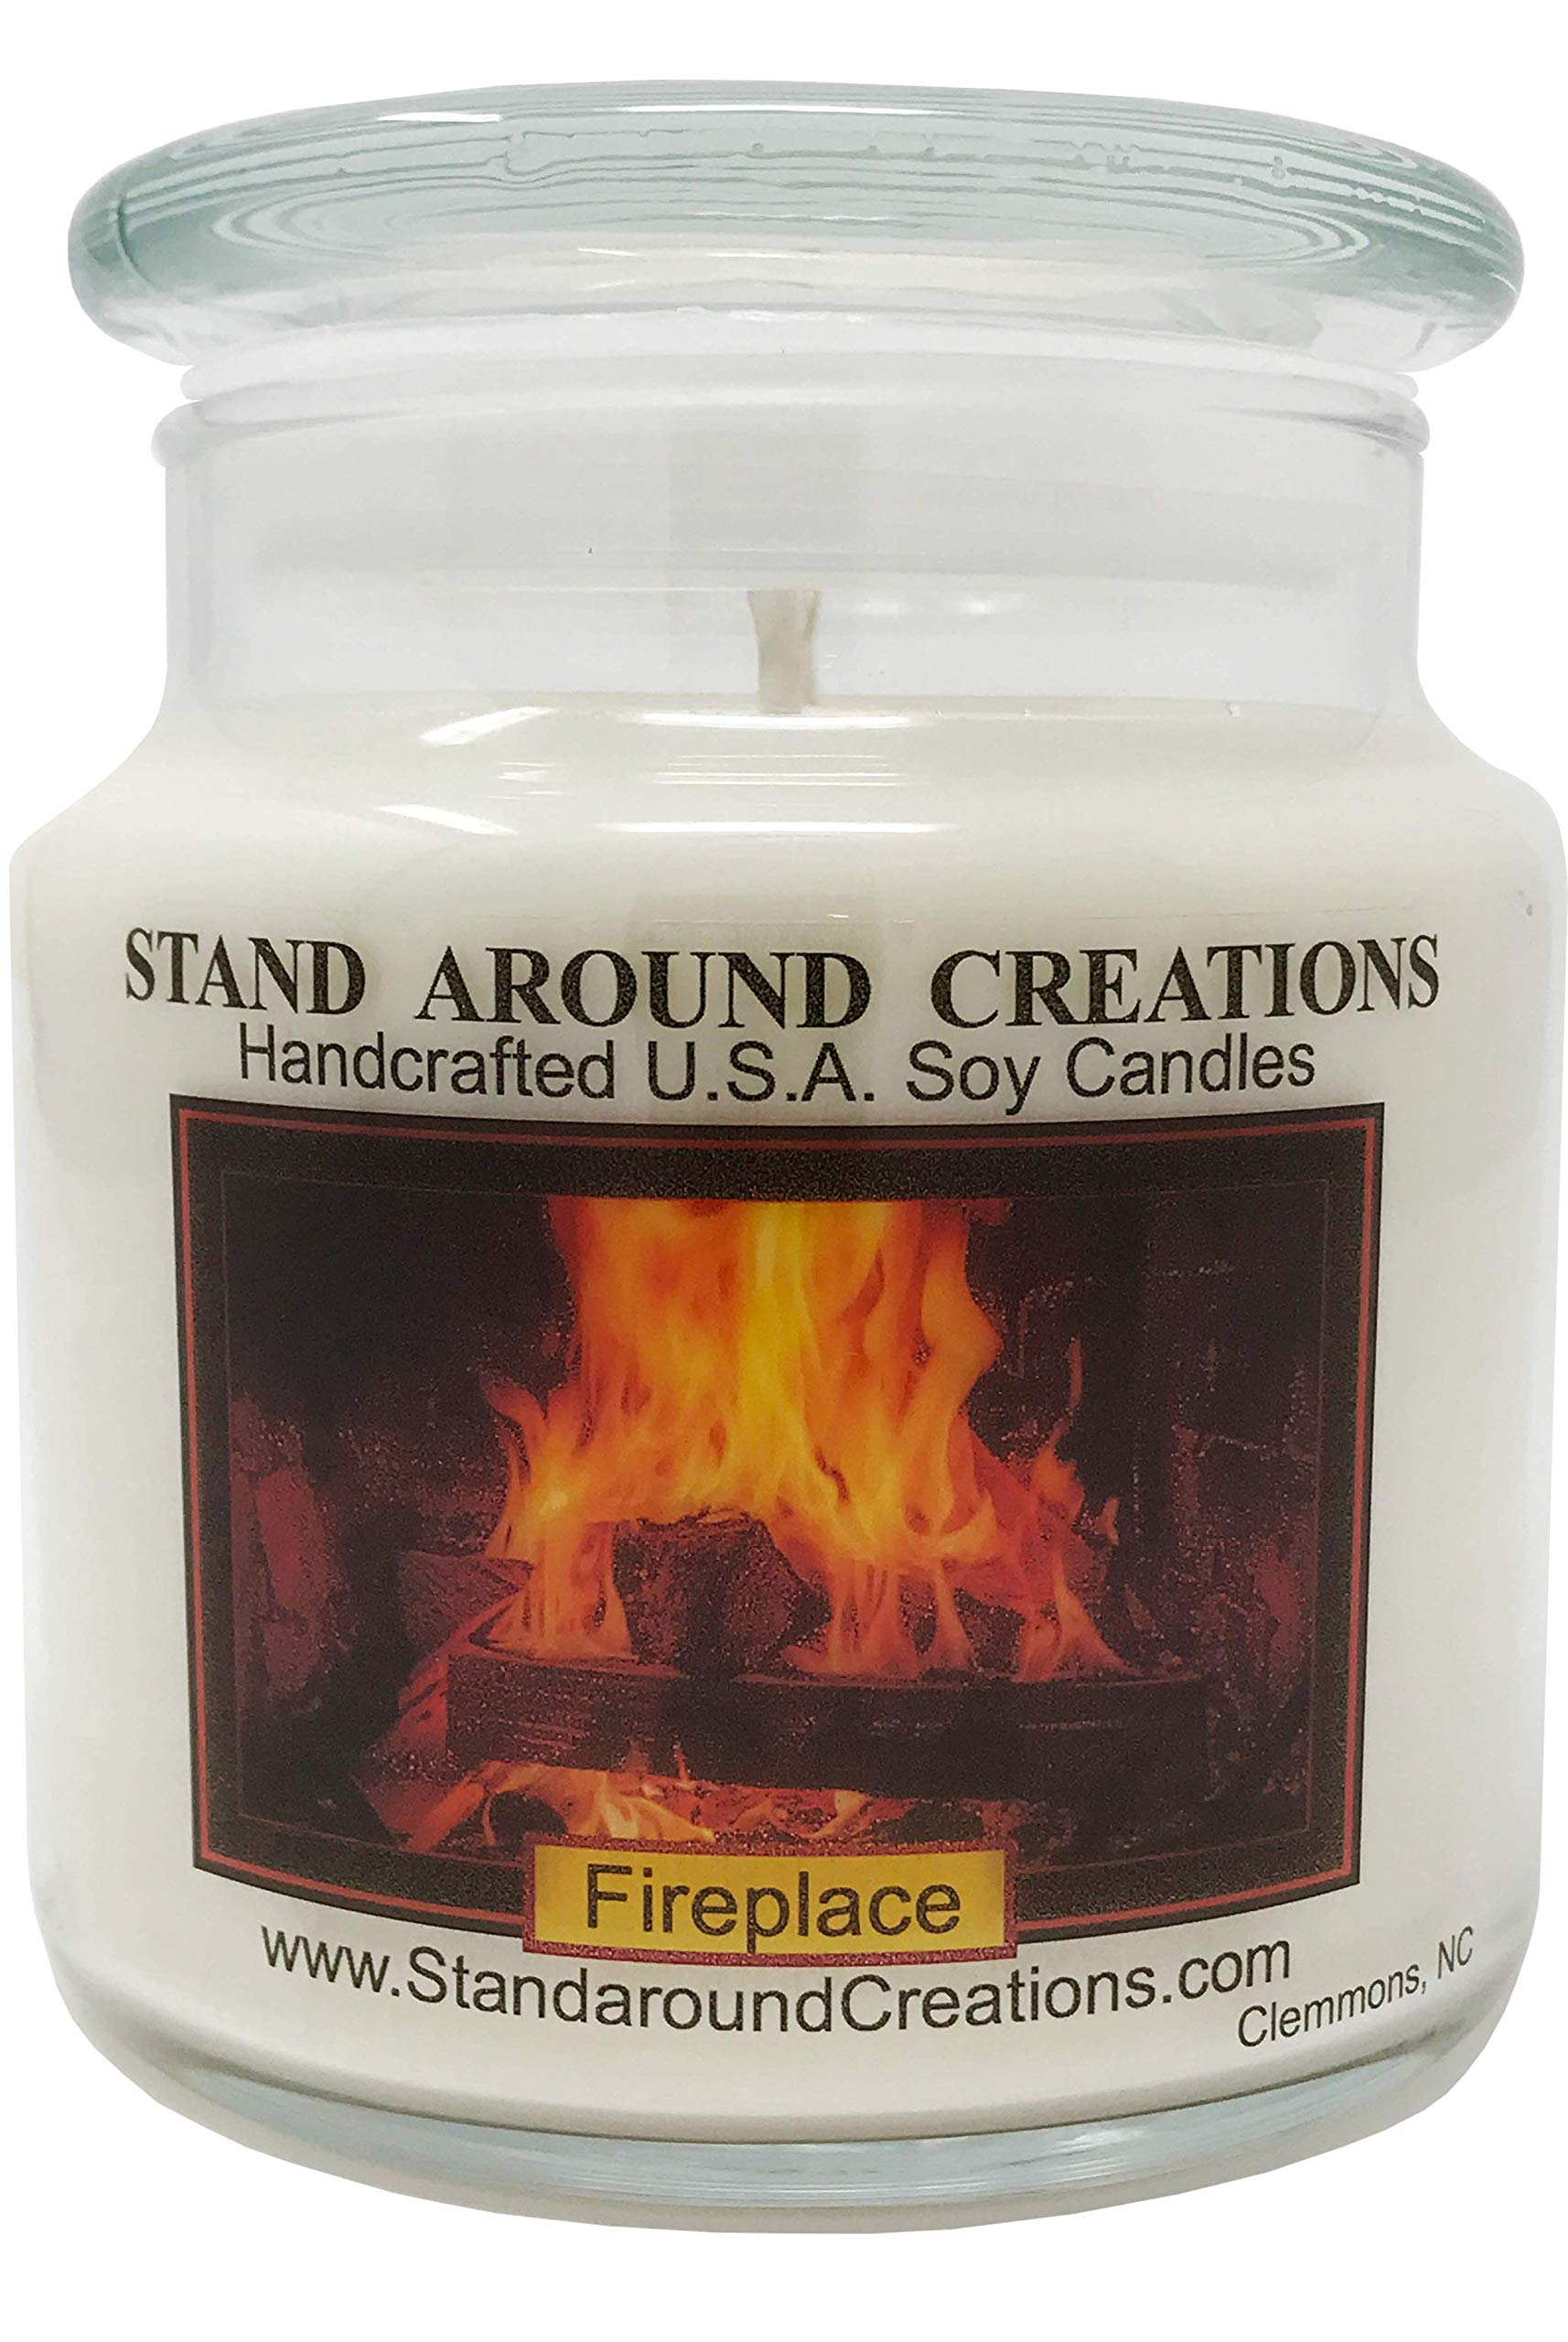 Premium 100% Soy Apothecary Candle - 16oz. - Fireplace: A woodsy, earthy aroma. True to it's name.